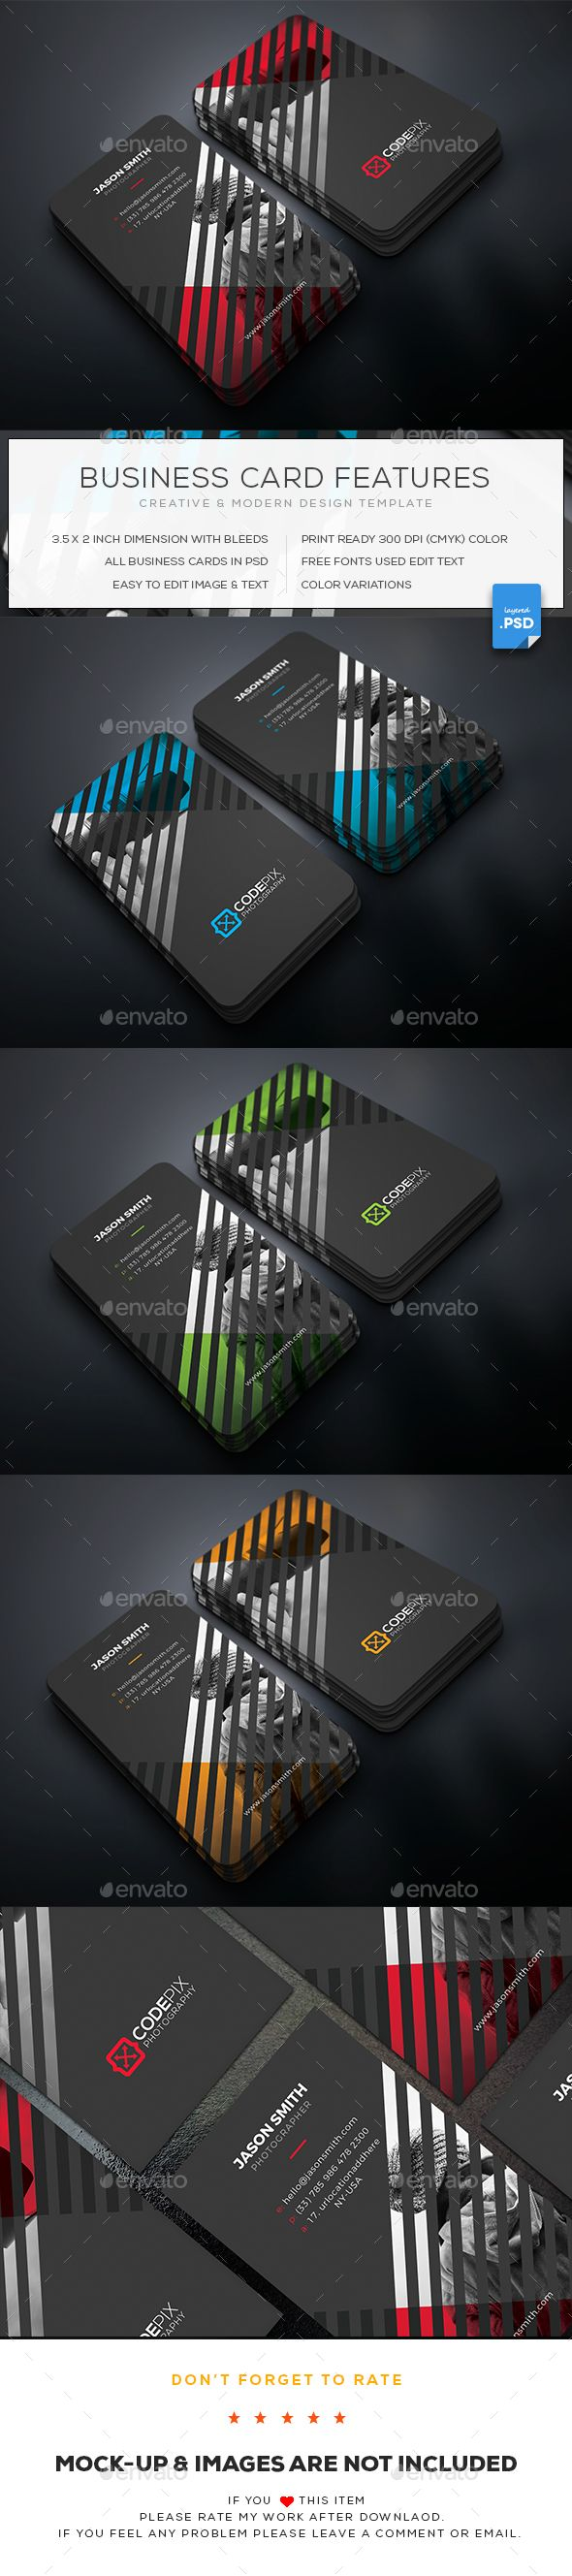 11515 best business card maker images on Pinterest